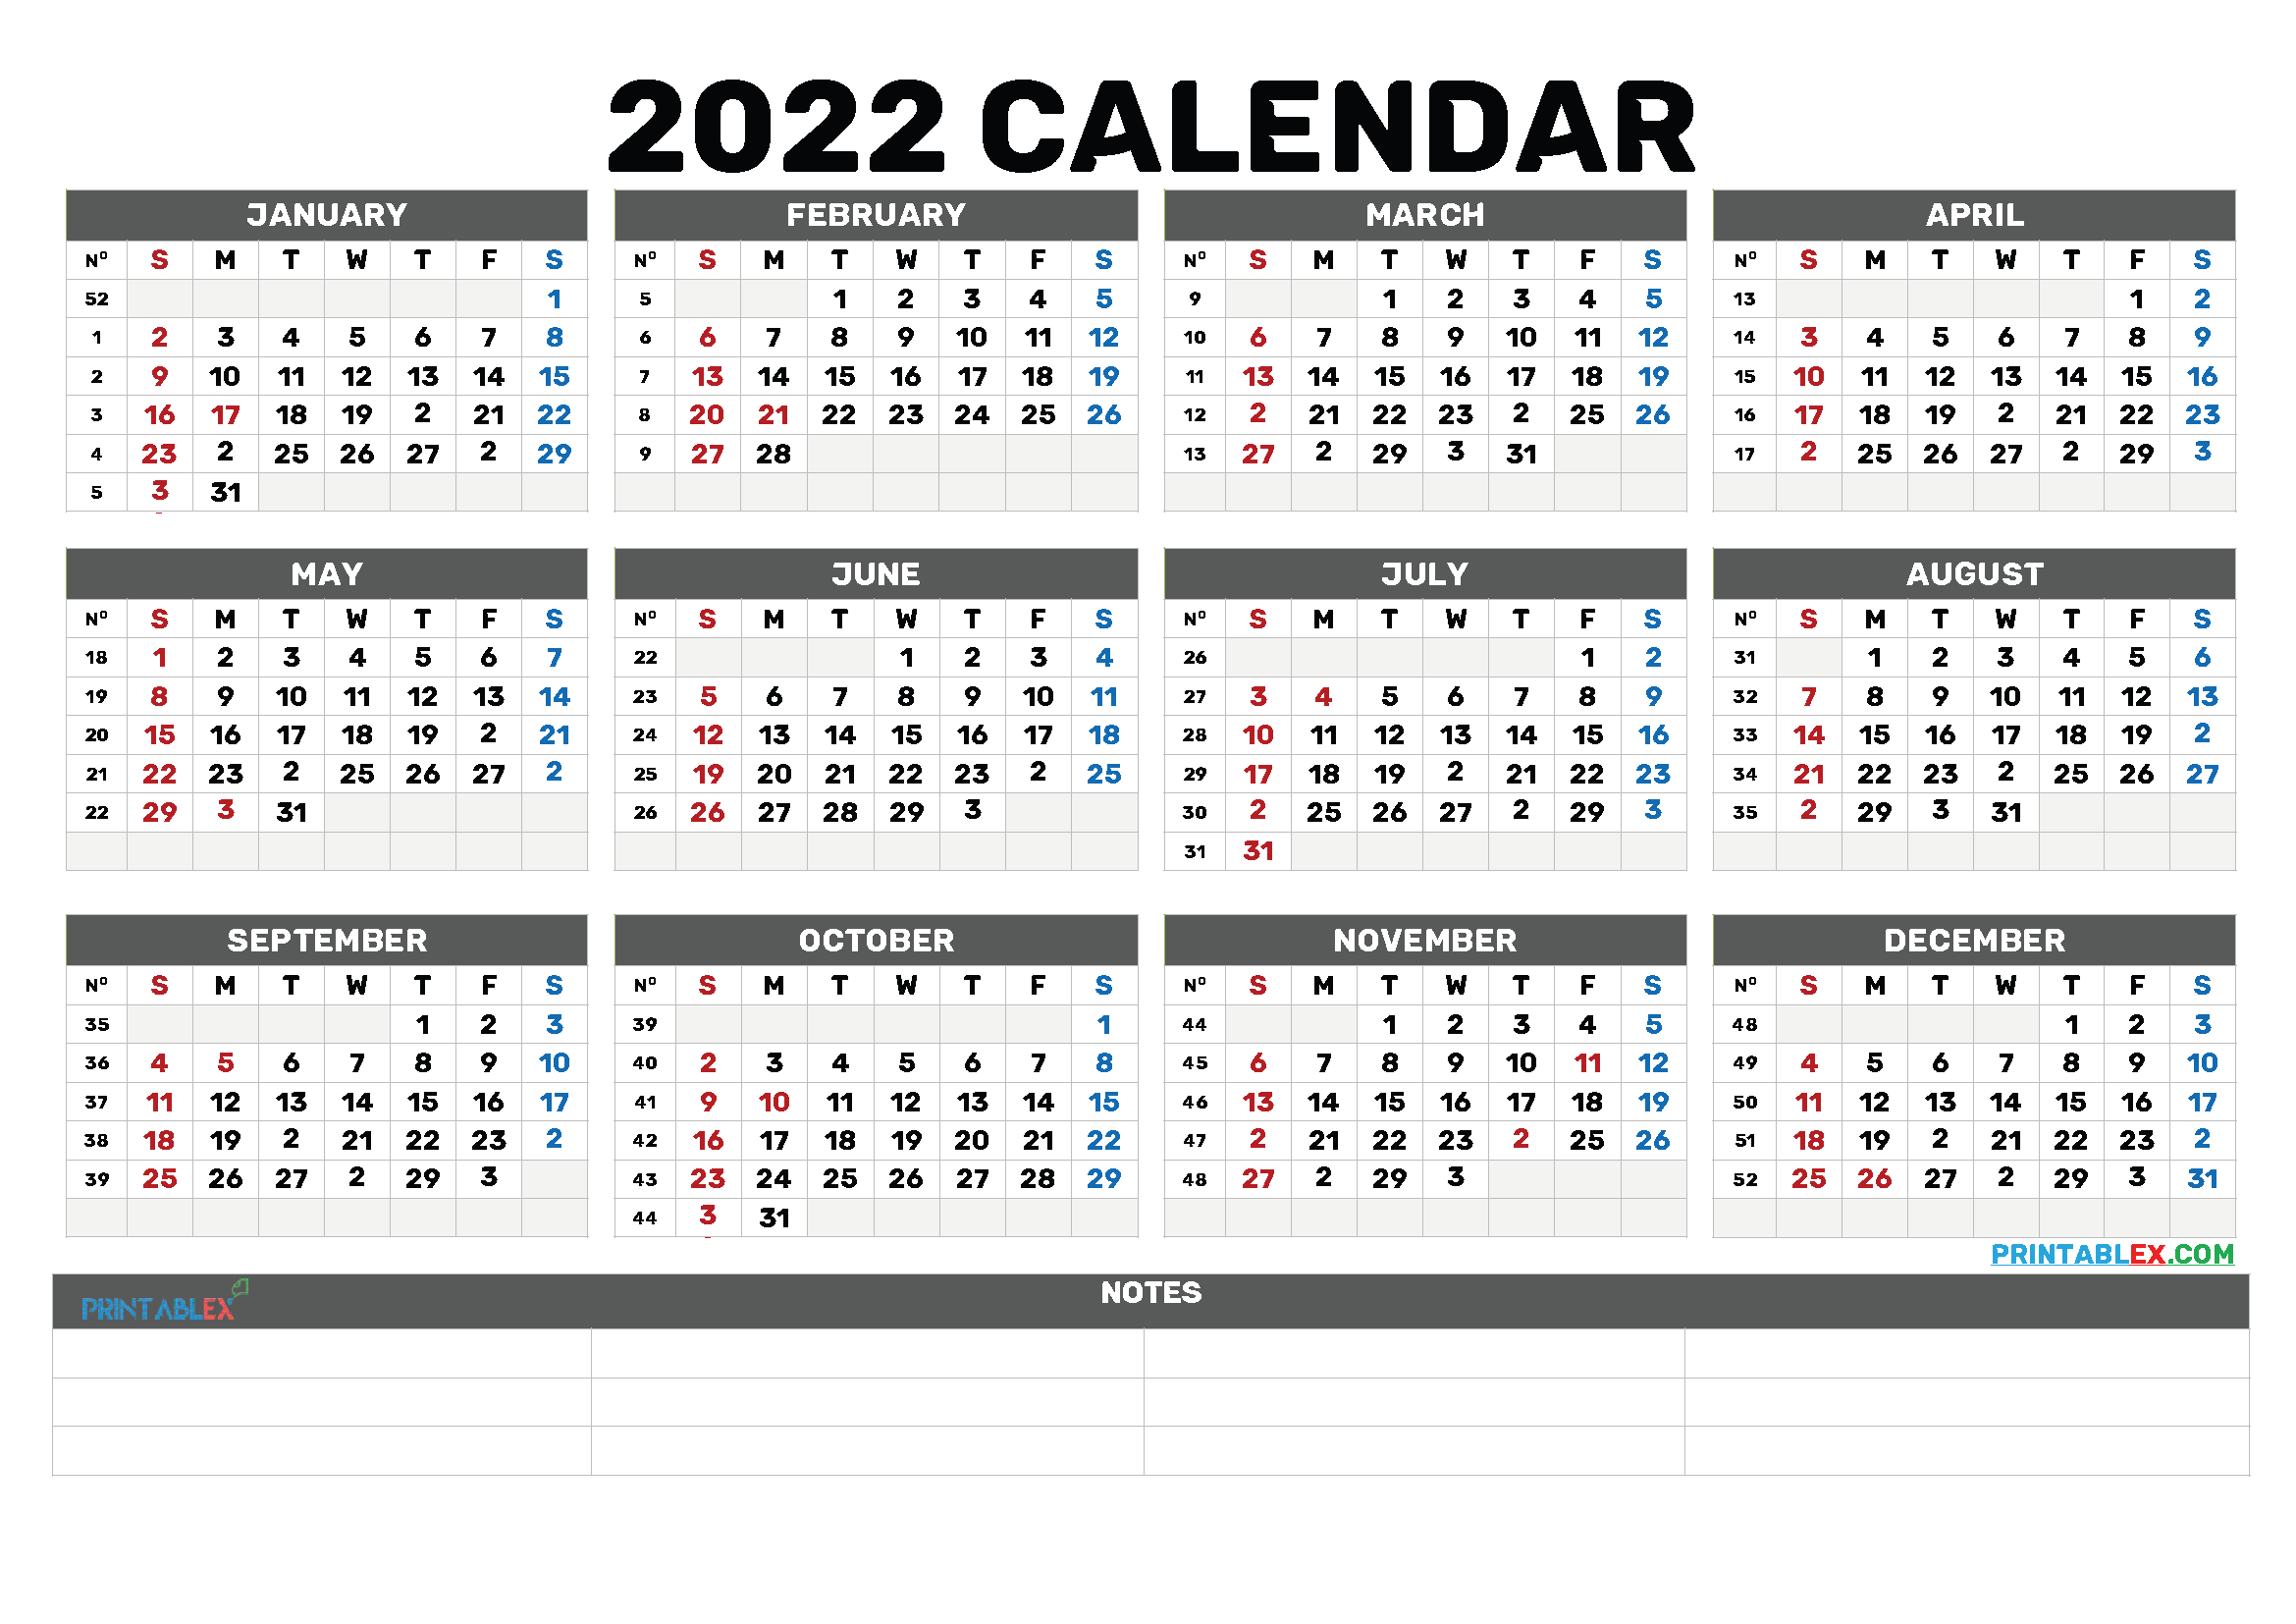 Free Printable 2022 Calendar by Year (Font: magneto)